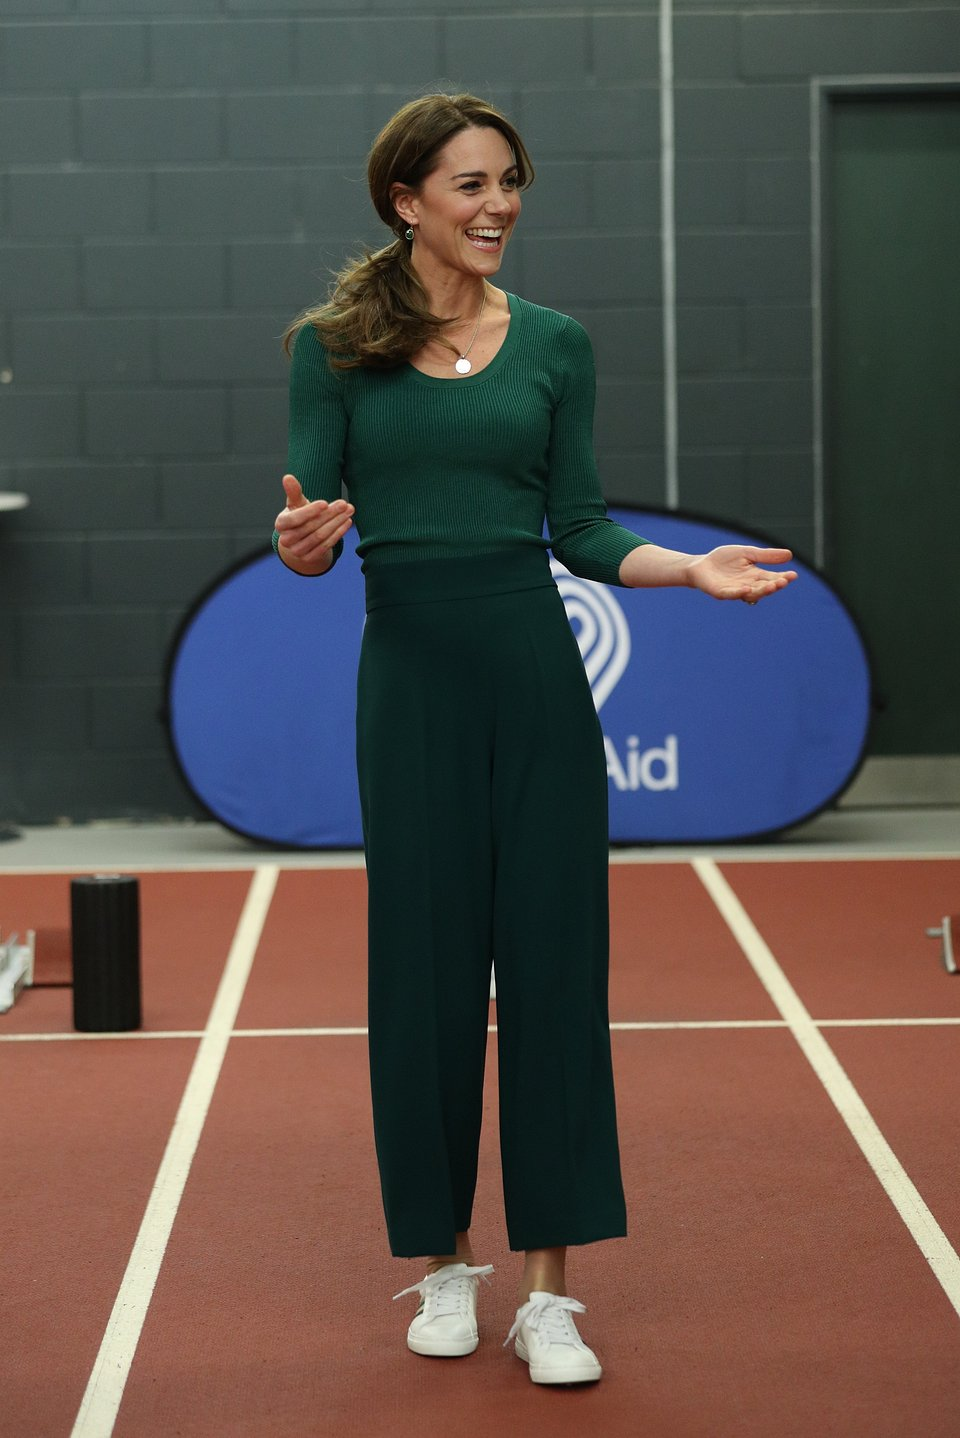 Kate Middleton wearing Mango jumper - Right from PA pictures 27022020 pr+social media.jpg